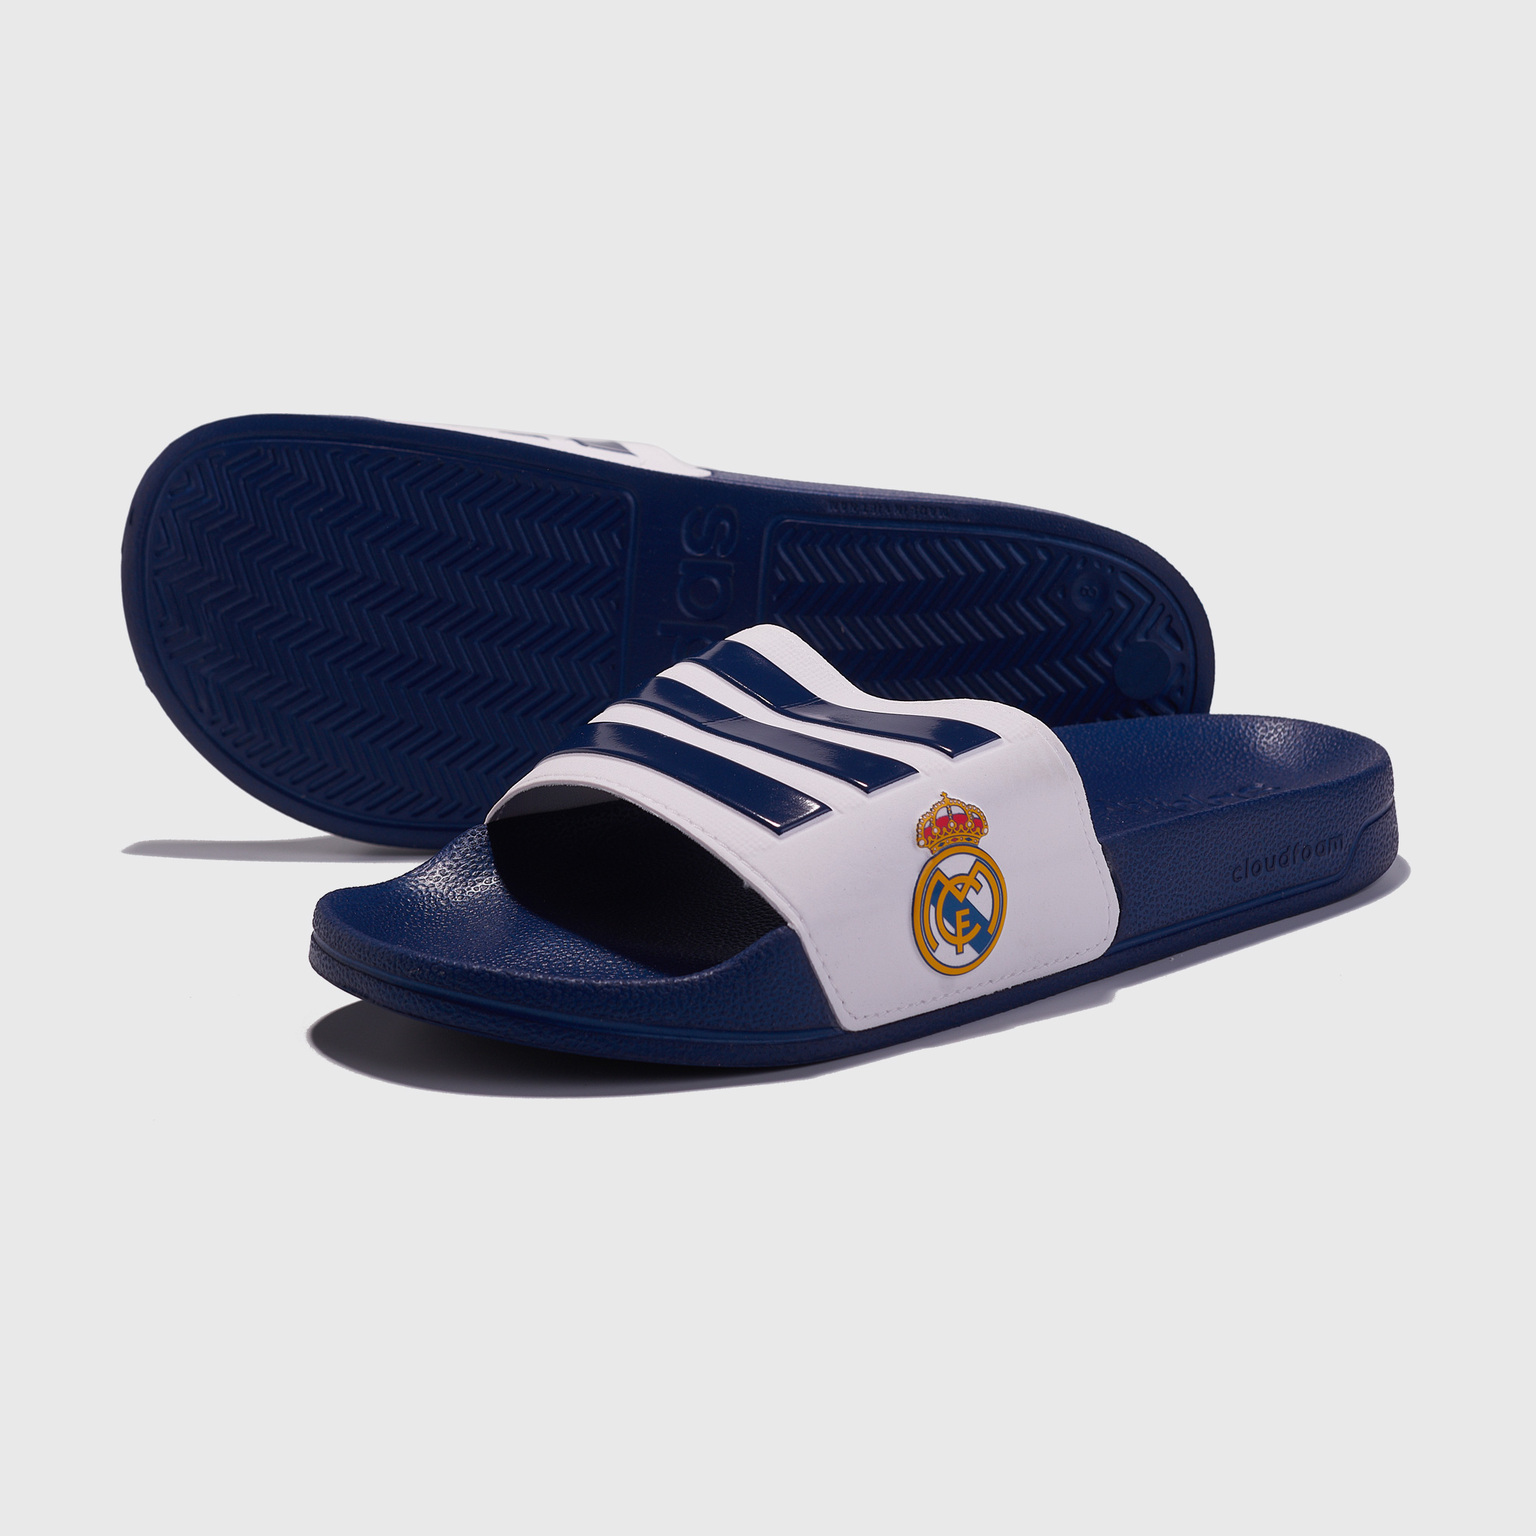 Сланцы Adidas Real Madrid Adilette Shower FW7073 щитки adidas real madrid pro lite cw9701